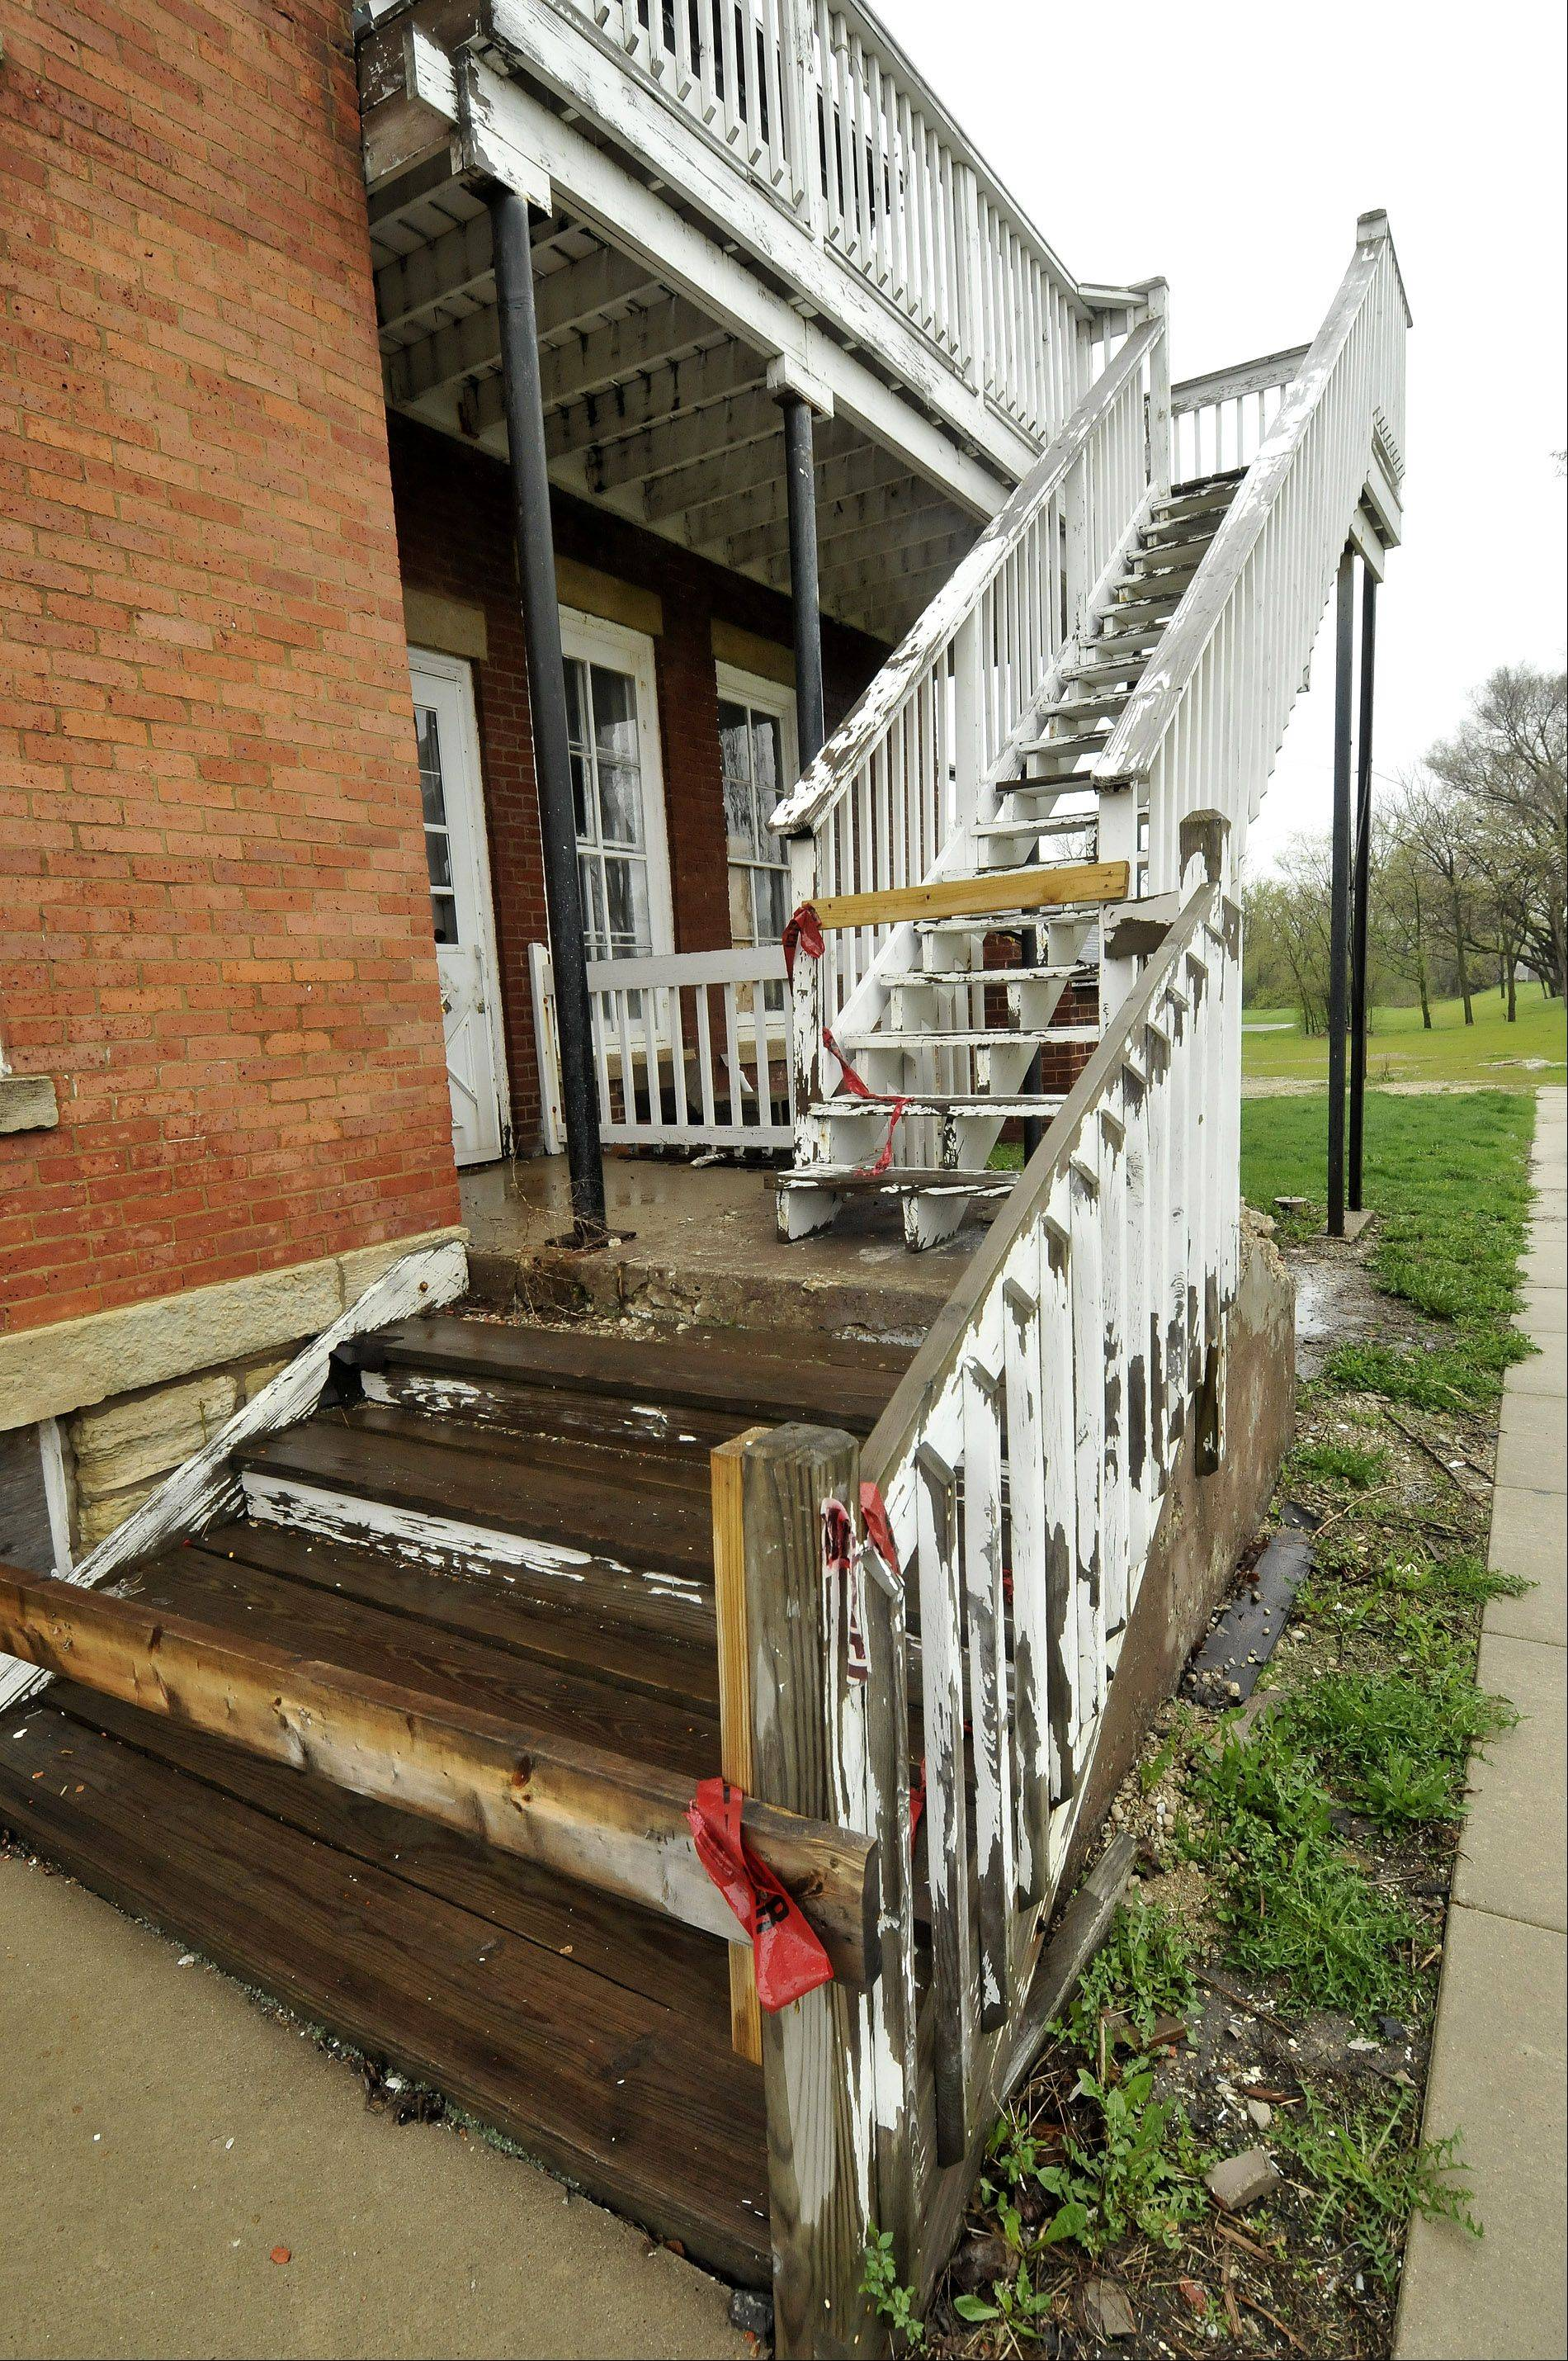 West Chicago, which owns the Joel Wiant House, is seeking a developer to rehabilitate the historic structure. But if one isn't found, the house could be demolished.